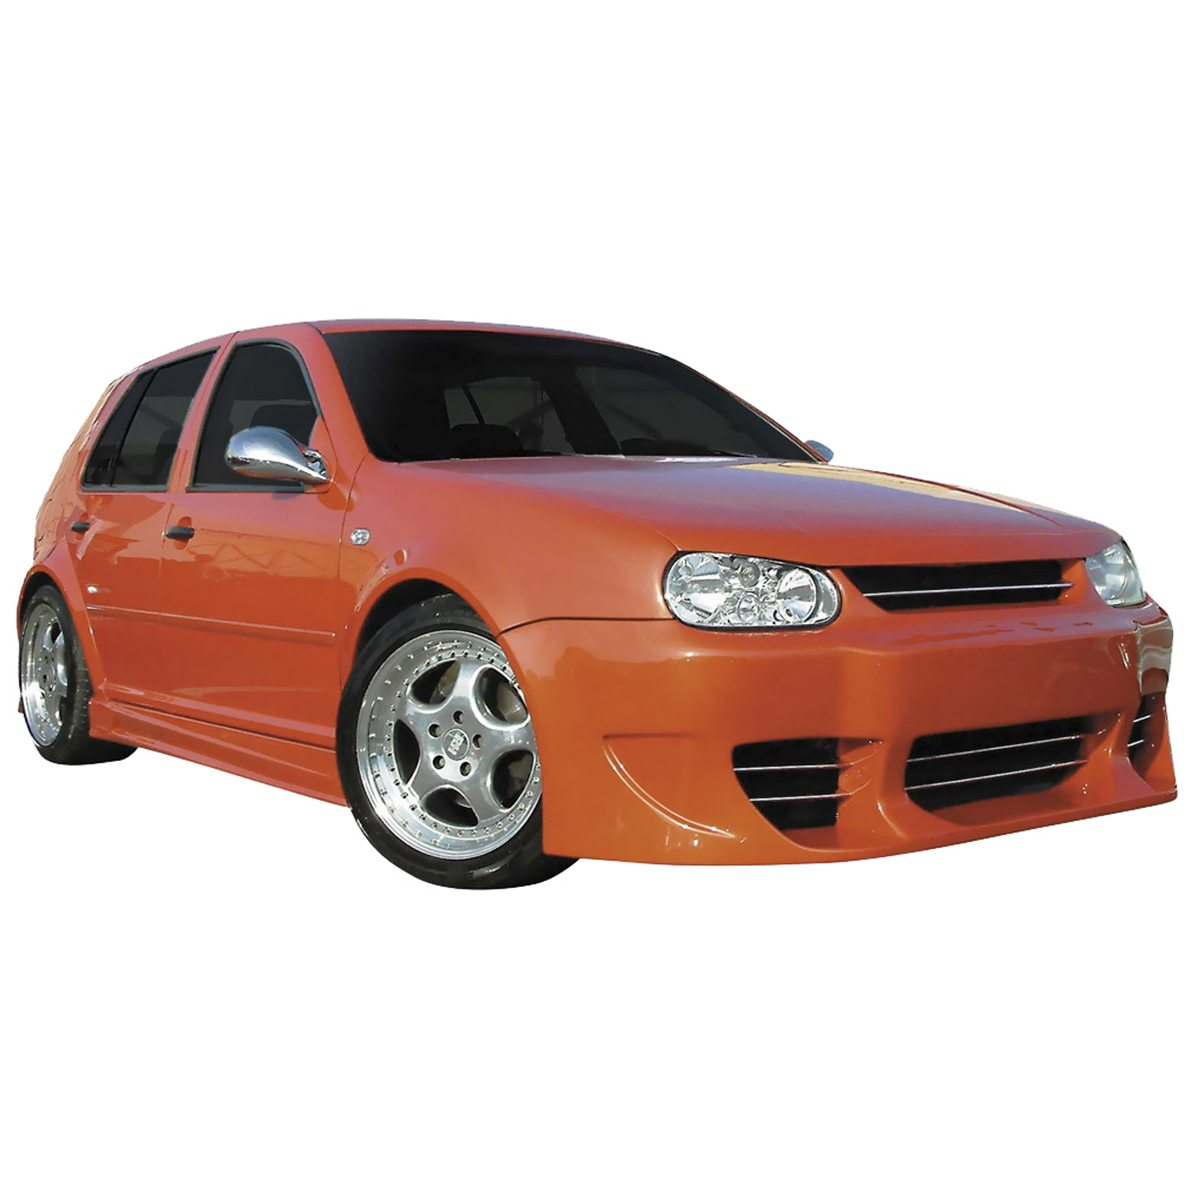 VW-Golf-IV-Summer-Frt-PCU1114.3